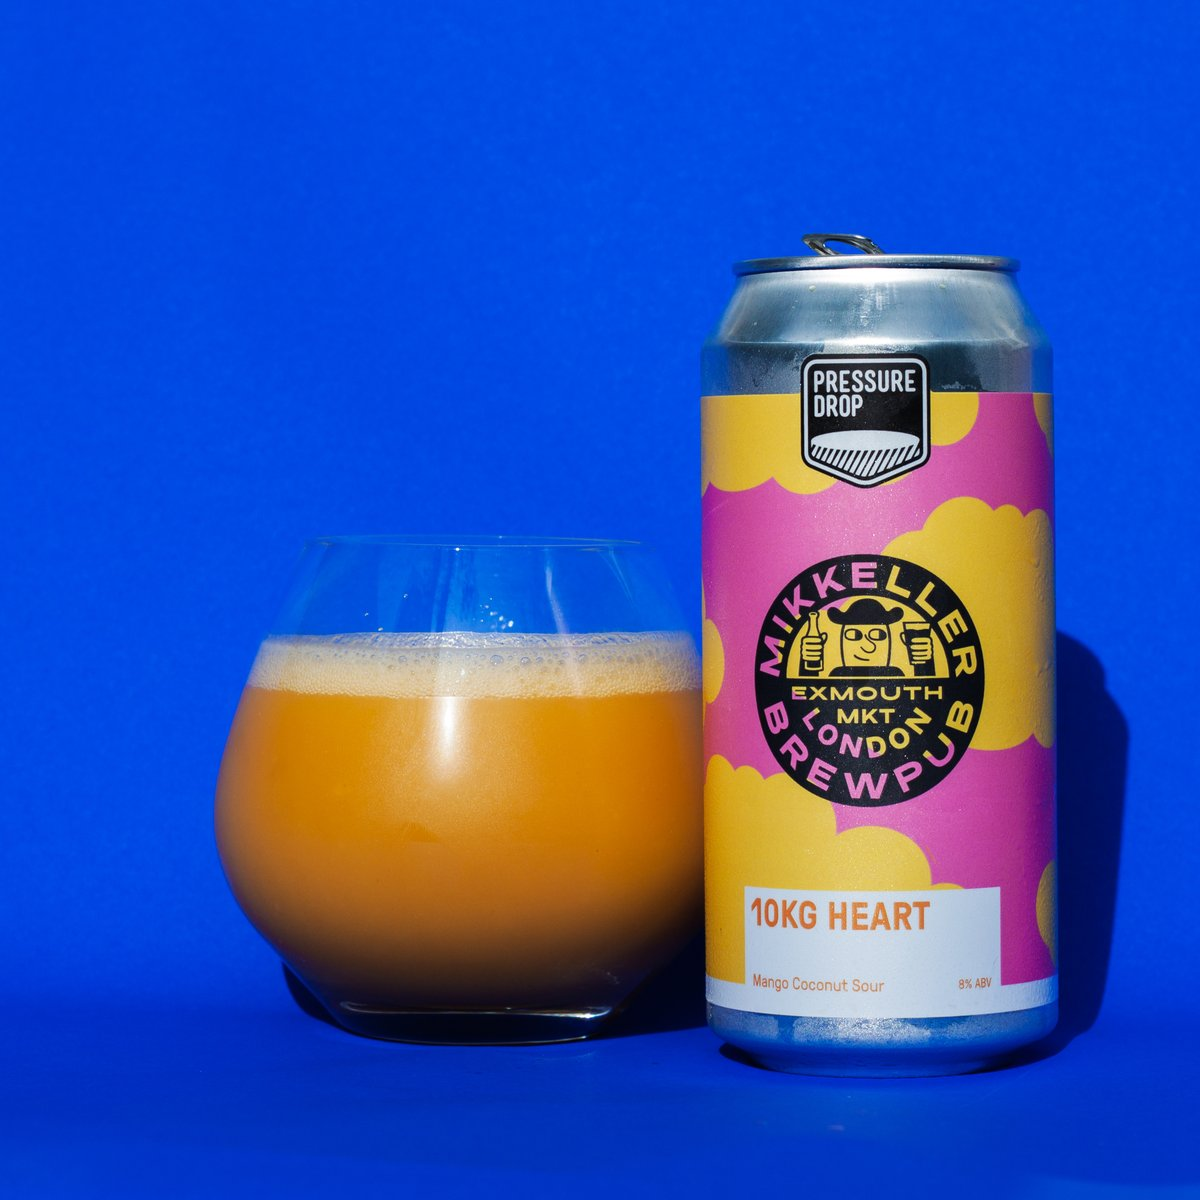 Launching at 9am today!  10kg Heart- 8% Mango Coconut Imperial Ice Cream Sour (Collab with @MikkellerBeer Brew Pub  In Dreams- 5.8% Idaho-7 & Mosaic New England Pale  https://t.co/3oaFB3aQbl https://t.co/4D9VzJSvvA